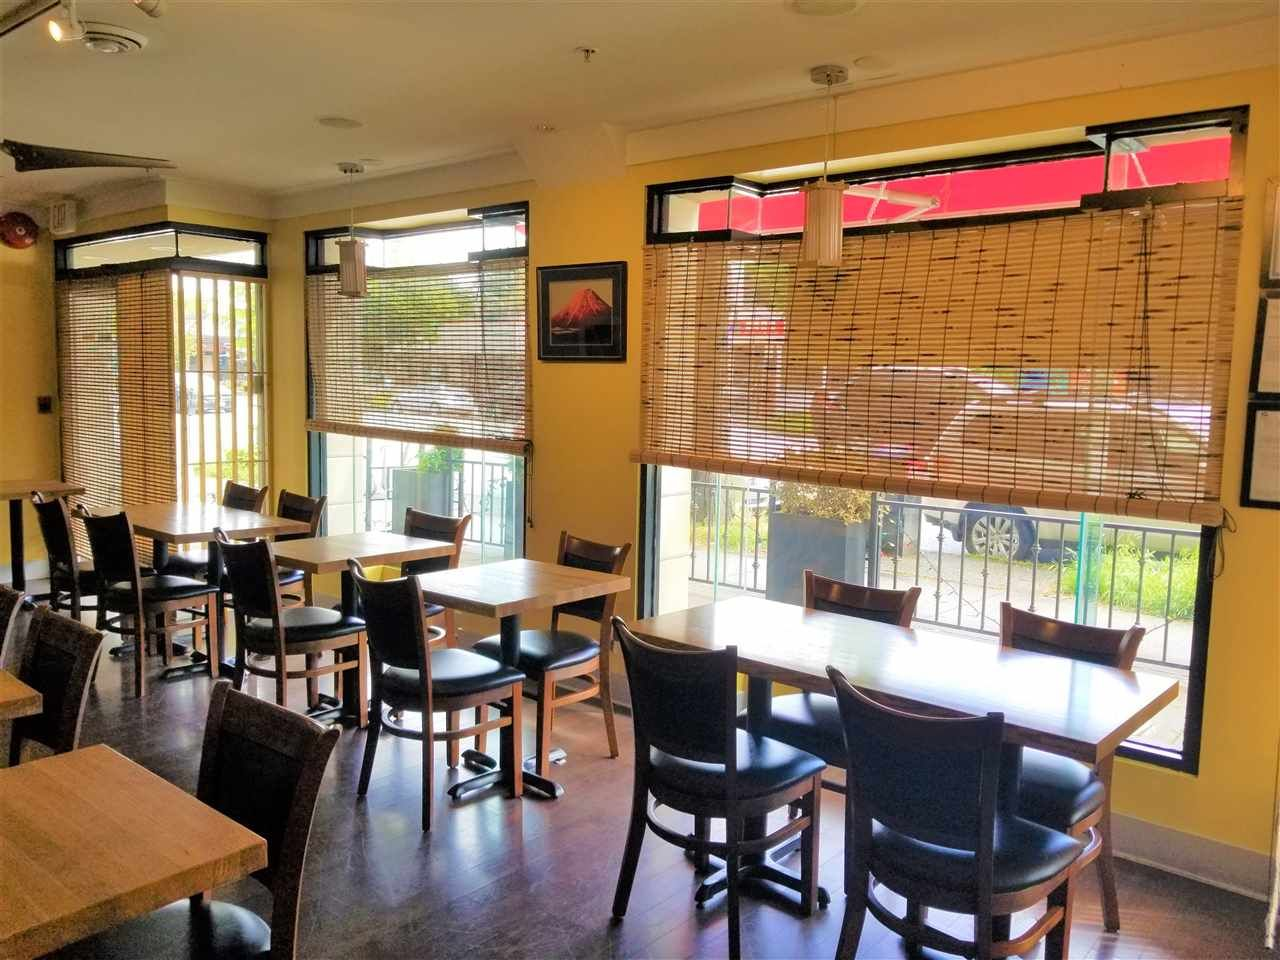 Main Photo: 2585 W BROADWAY in Vancouver: Kitsilano Business for sale (Vancouver West)  : MLS®# C8032350